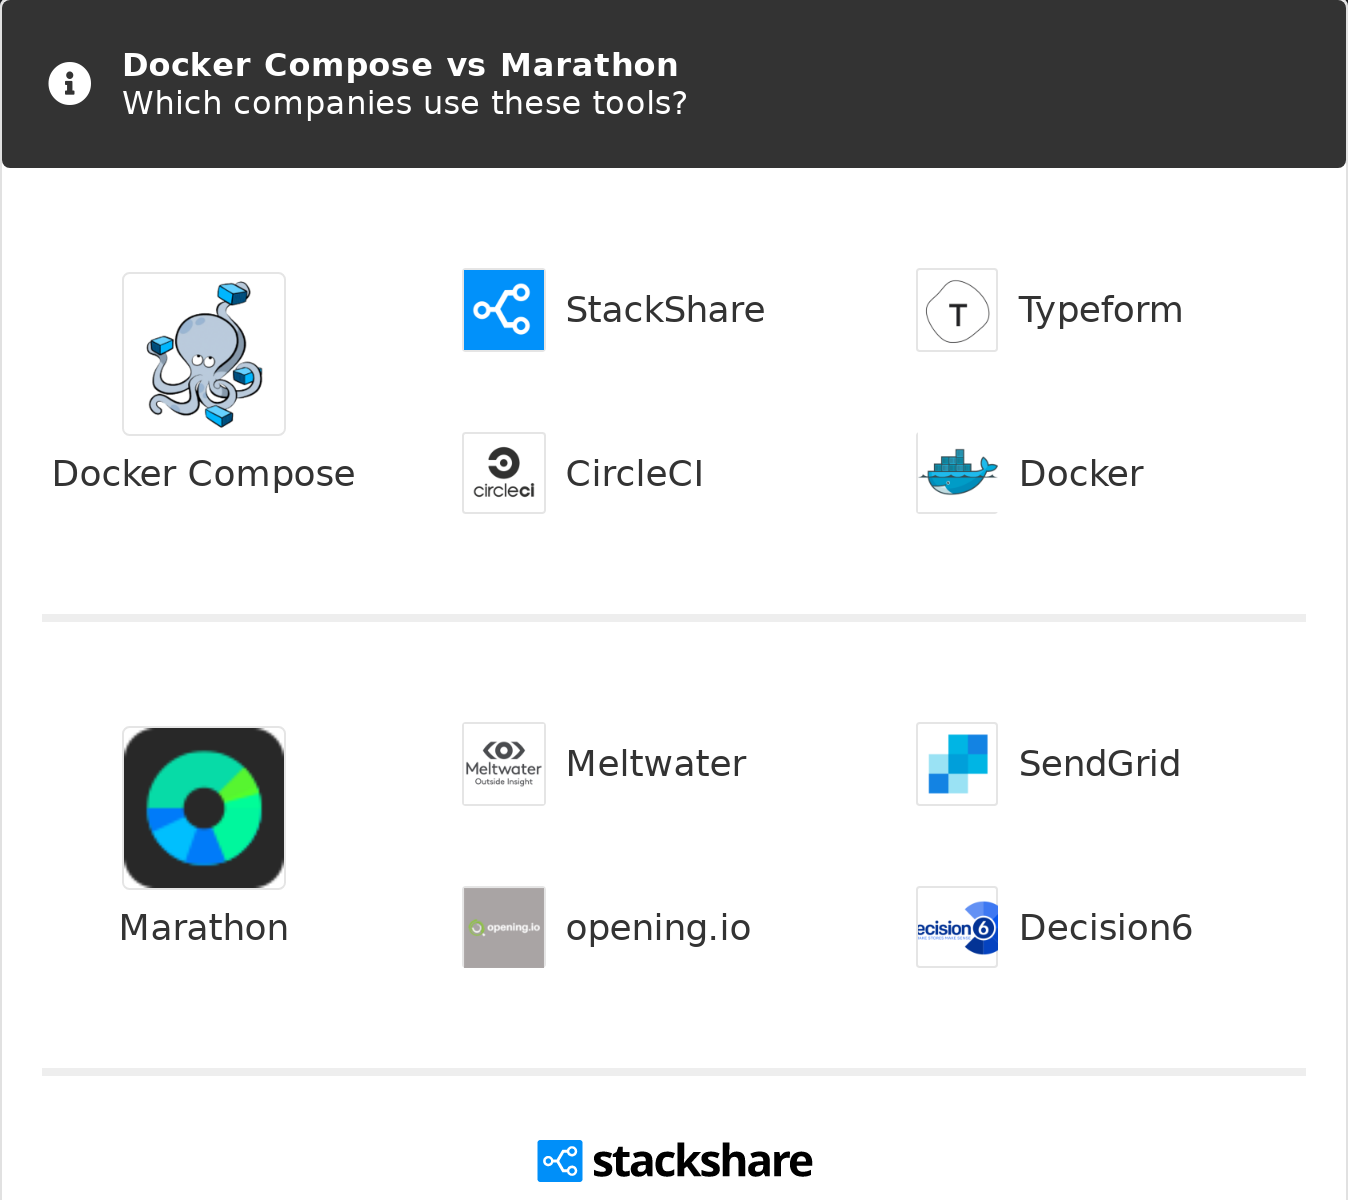 Docker Compose vs Marathon | What are the differences?